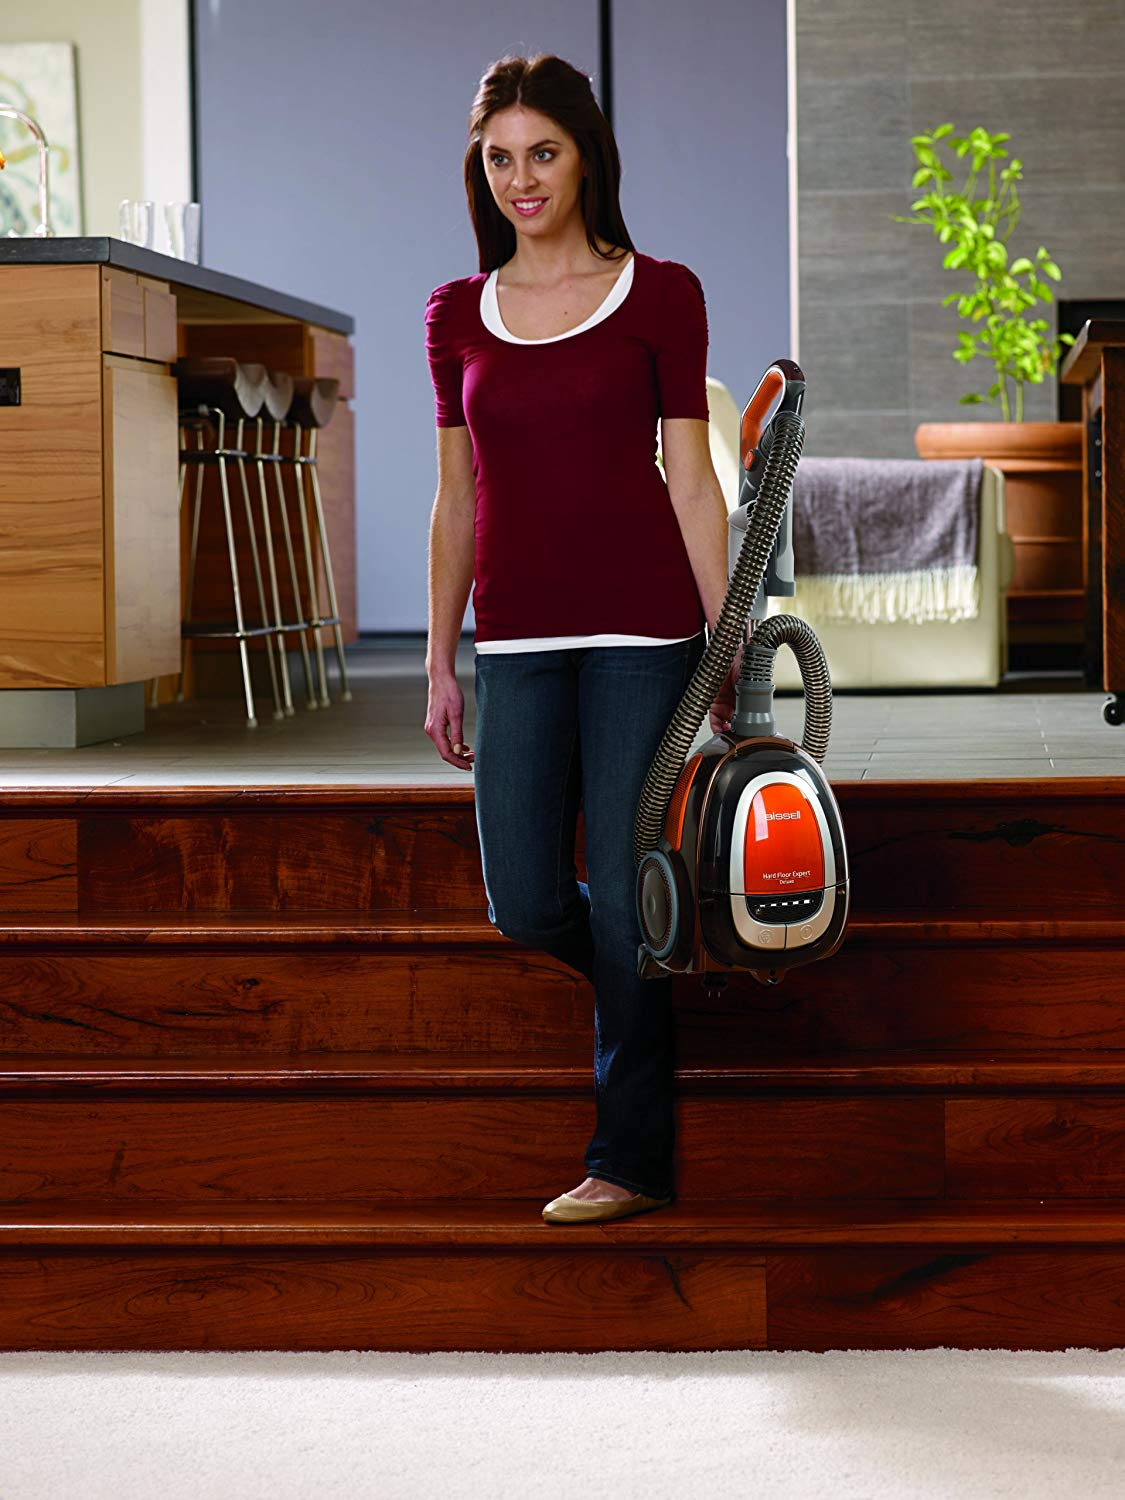 Bissell-Hard-Floor-Expert-Deluxe-Canister-Vacuum